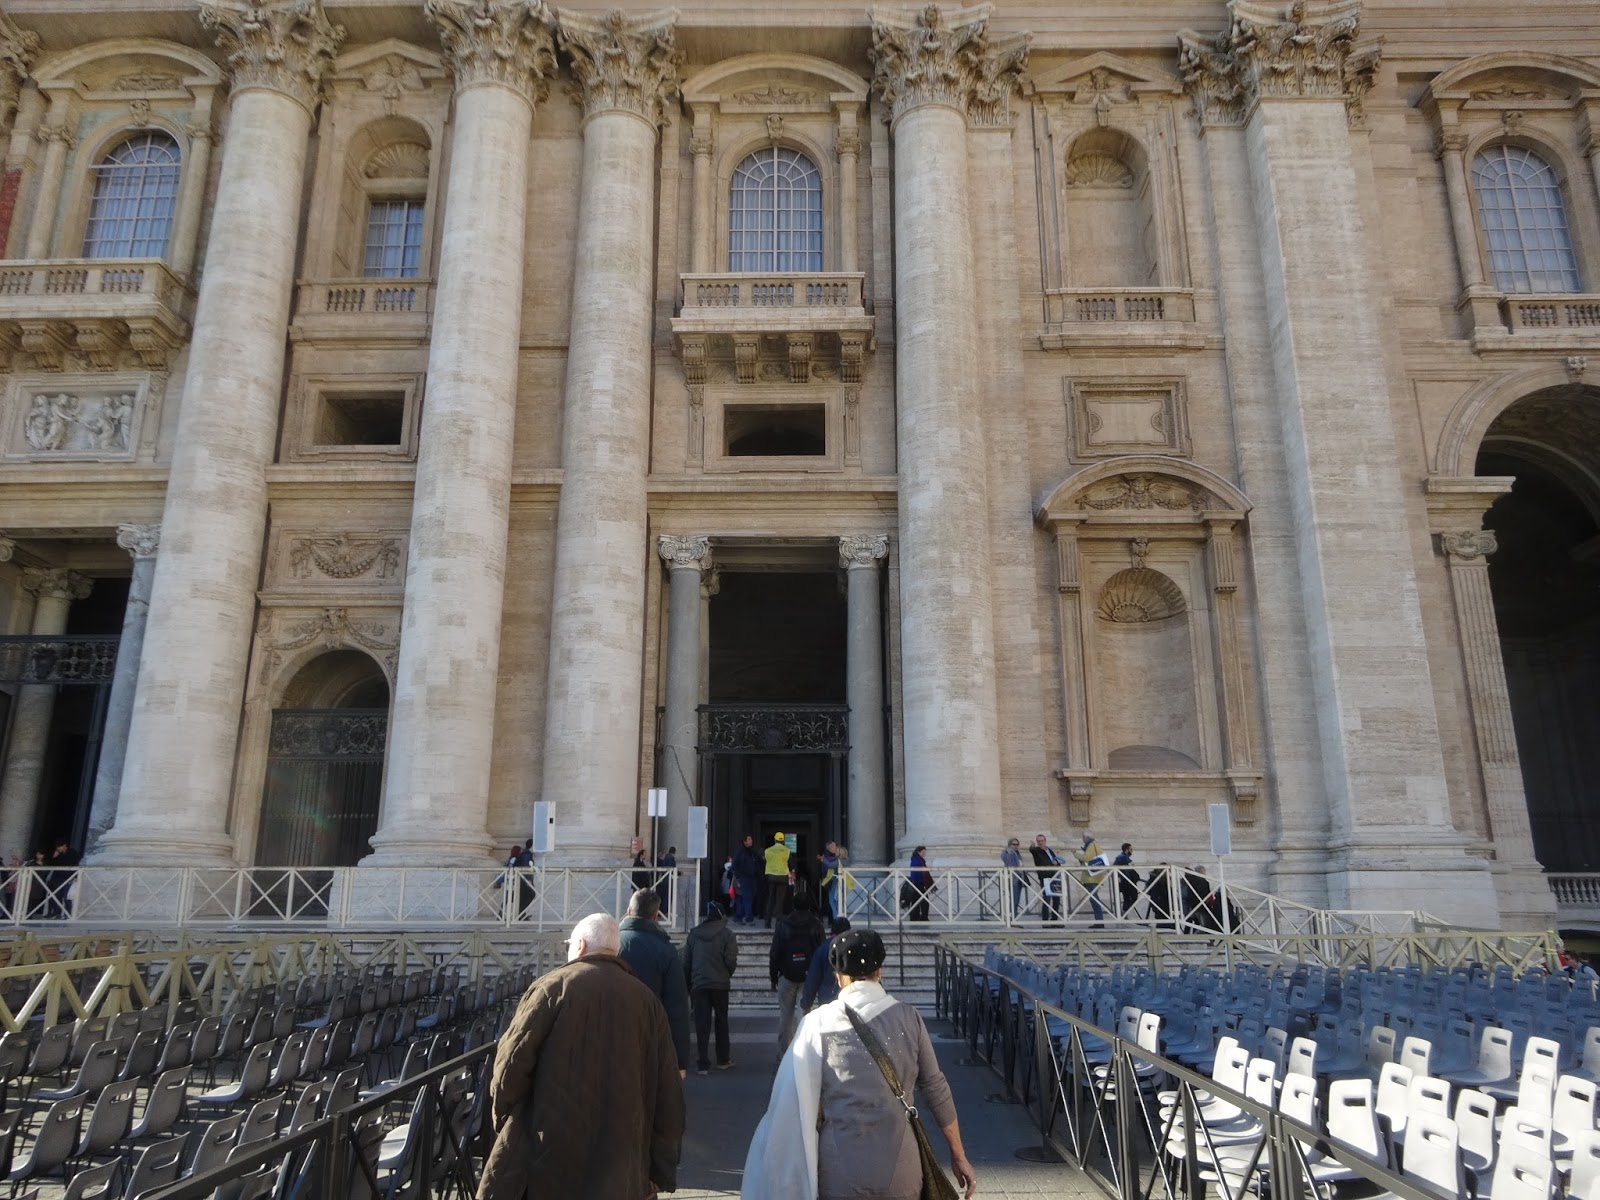 Once you ascend the steps you are free to either go directly to the Holy Door or to linger around a bit outside. I went immediately inside the narthex and ... & Servant and Steward: Crossing through the Holy Doors with Peter and ...